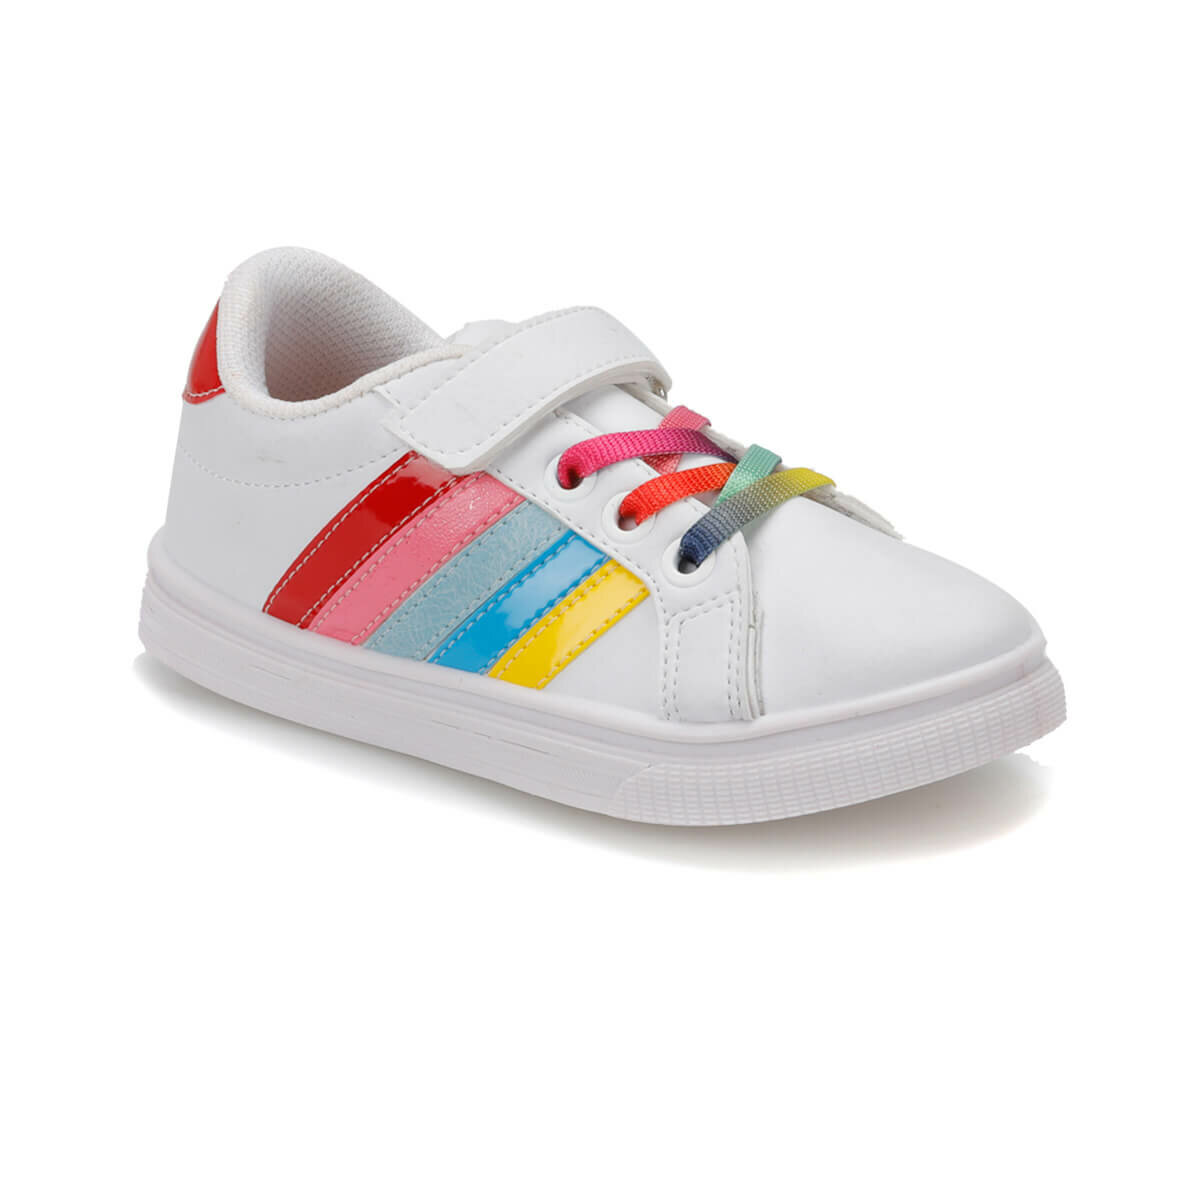 FLO FUNNY P White Female Child Sneaker Shoes I-Cool